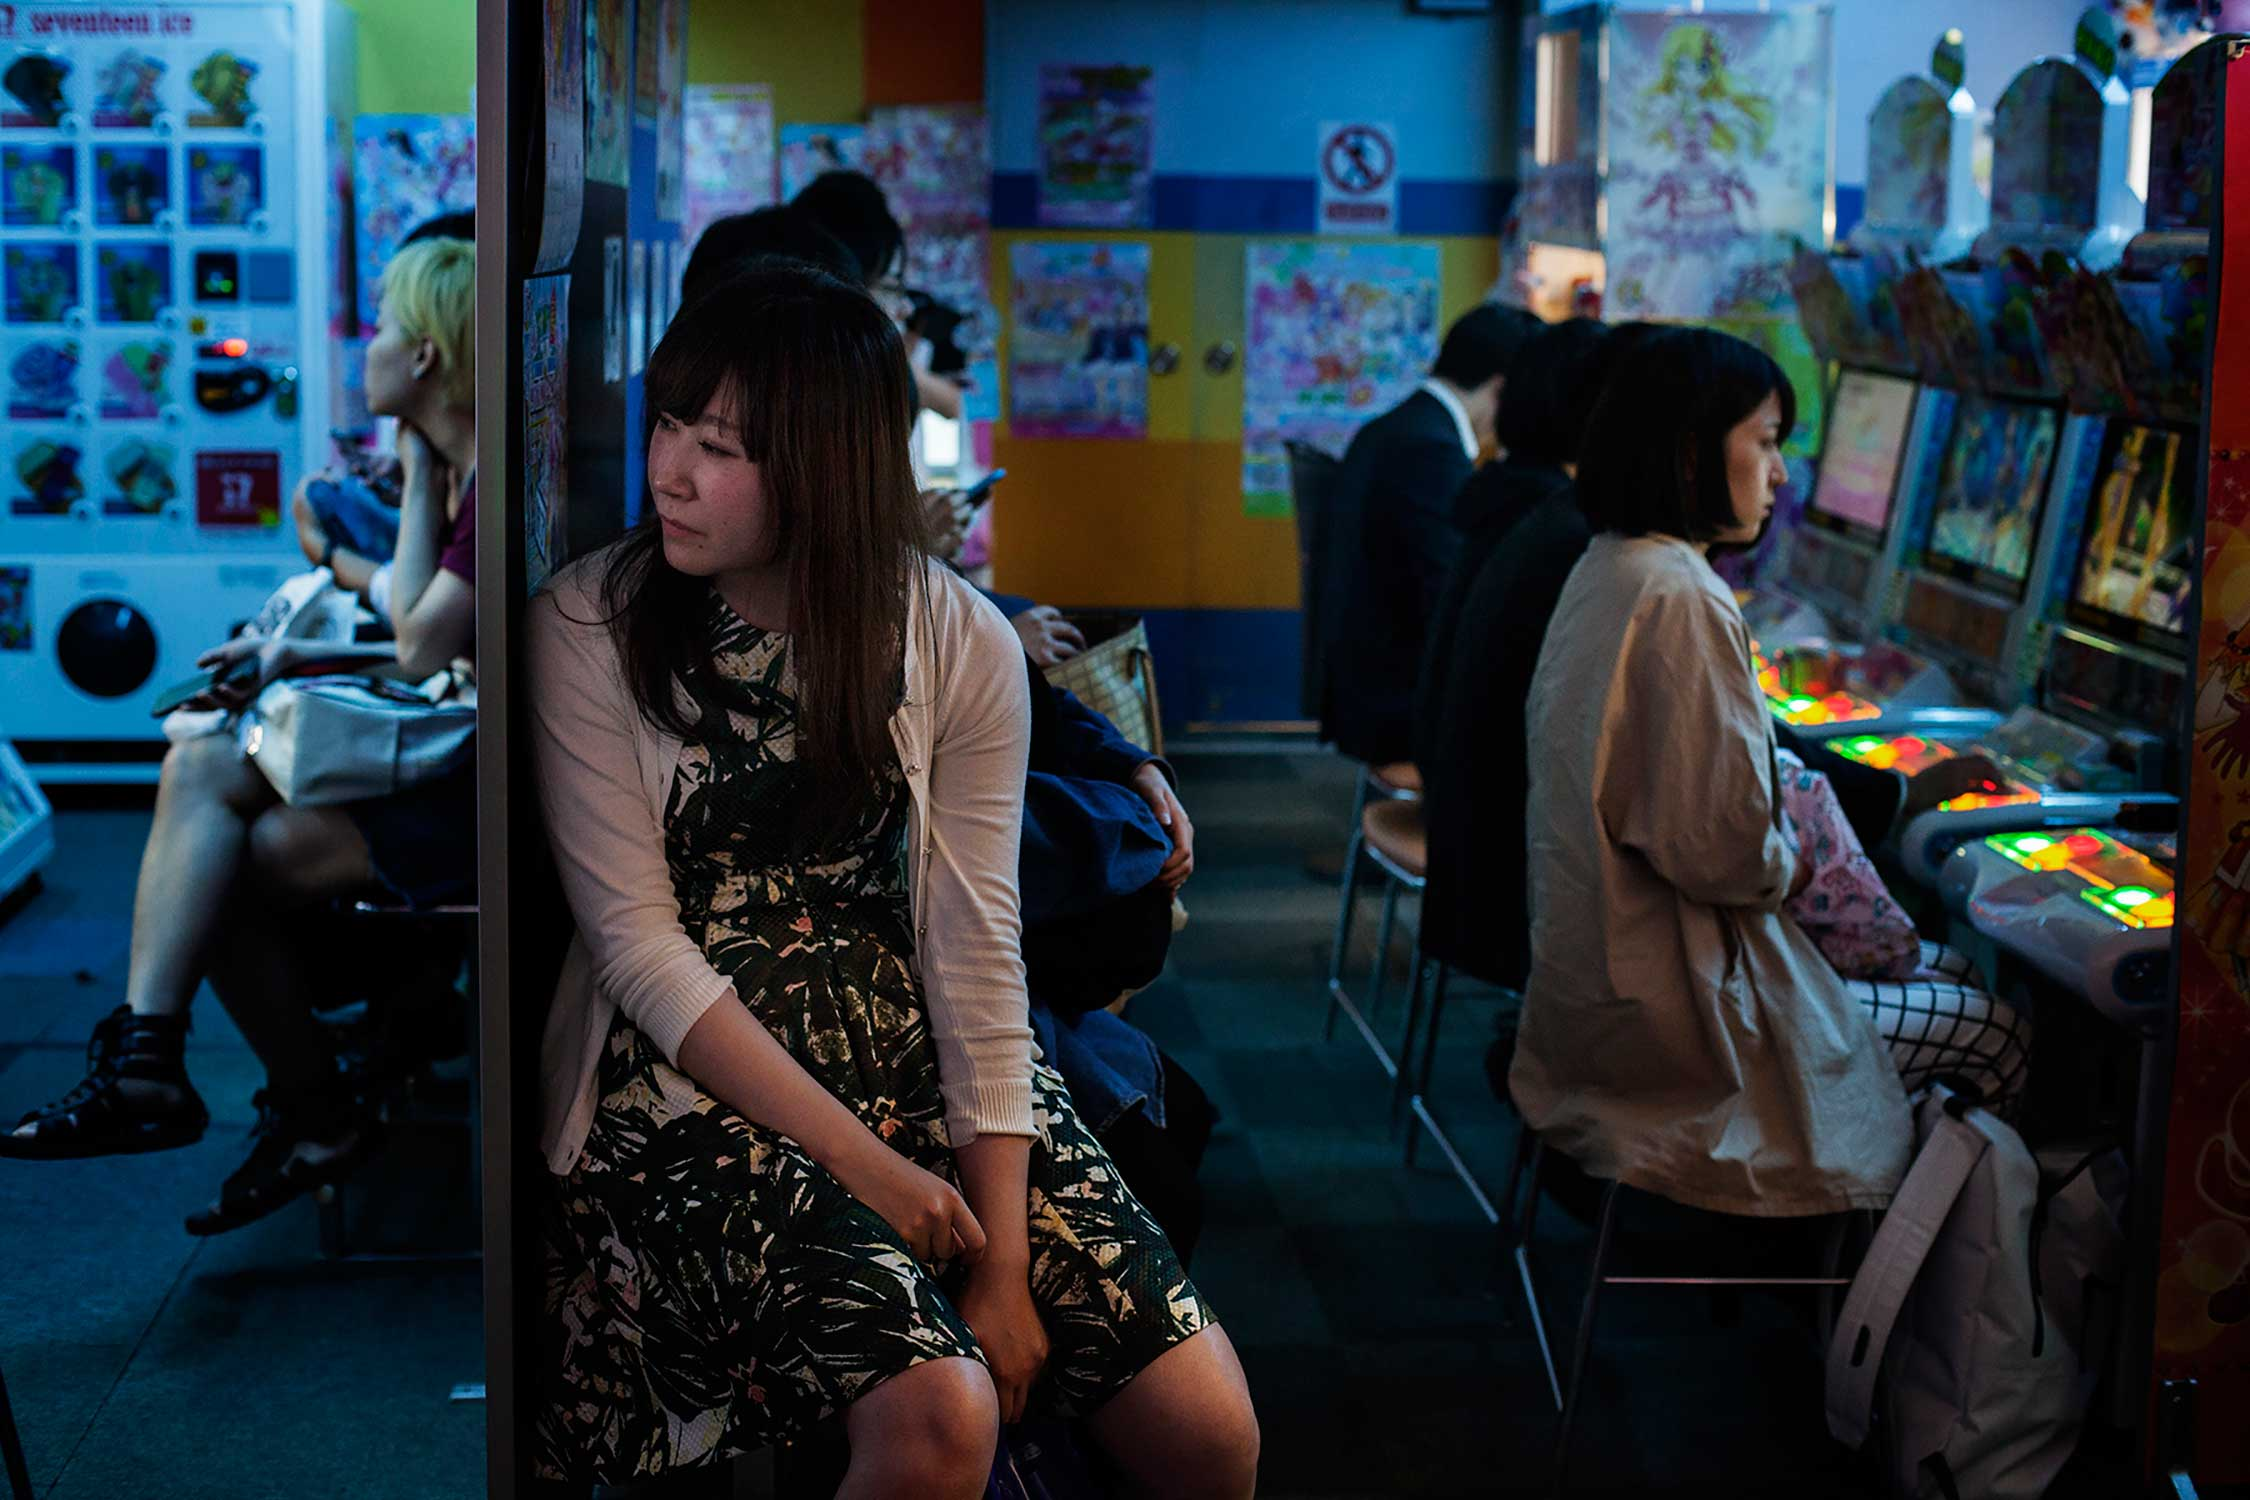 A women watches players in a Patchinko hall on a Friday night in Akihabara district, Tokyo.